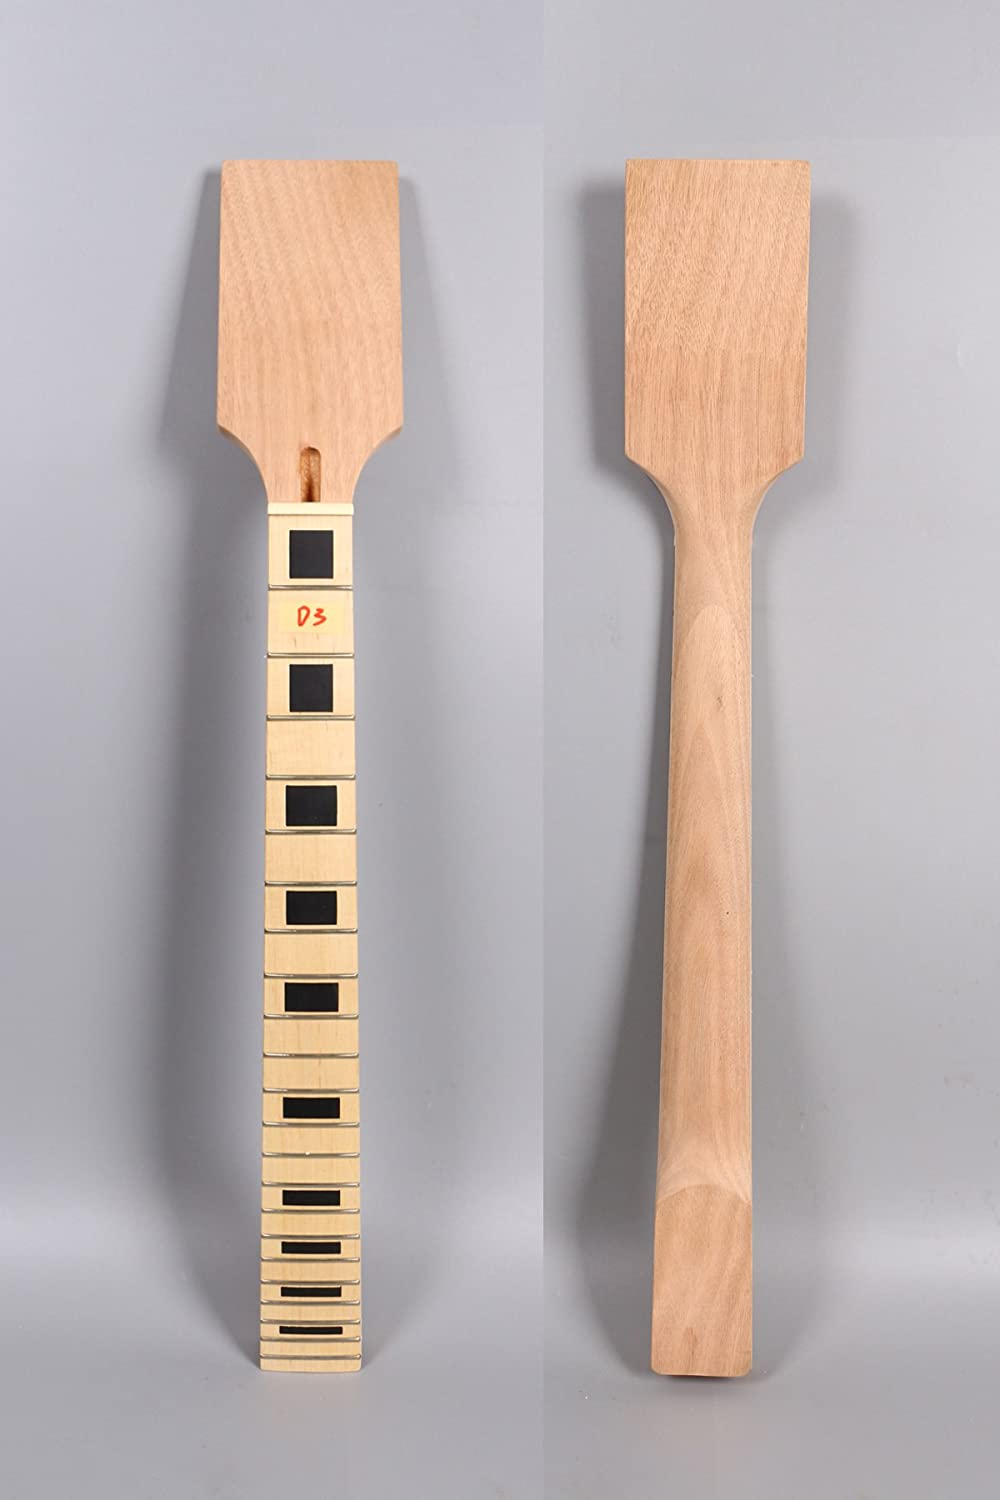 Yinfente Electric Guitar Neck Replacement 22 Fret 24.75 Inch DIY Guitar Paddle head Maple Mahogany wood